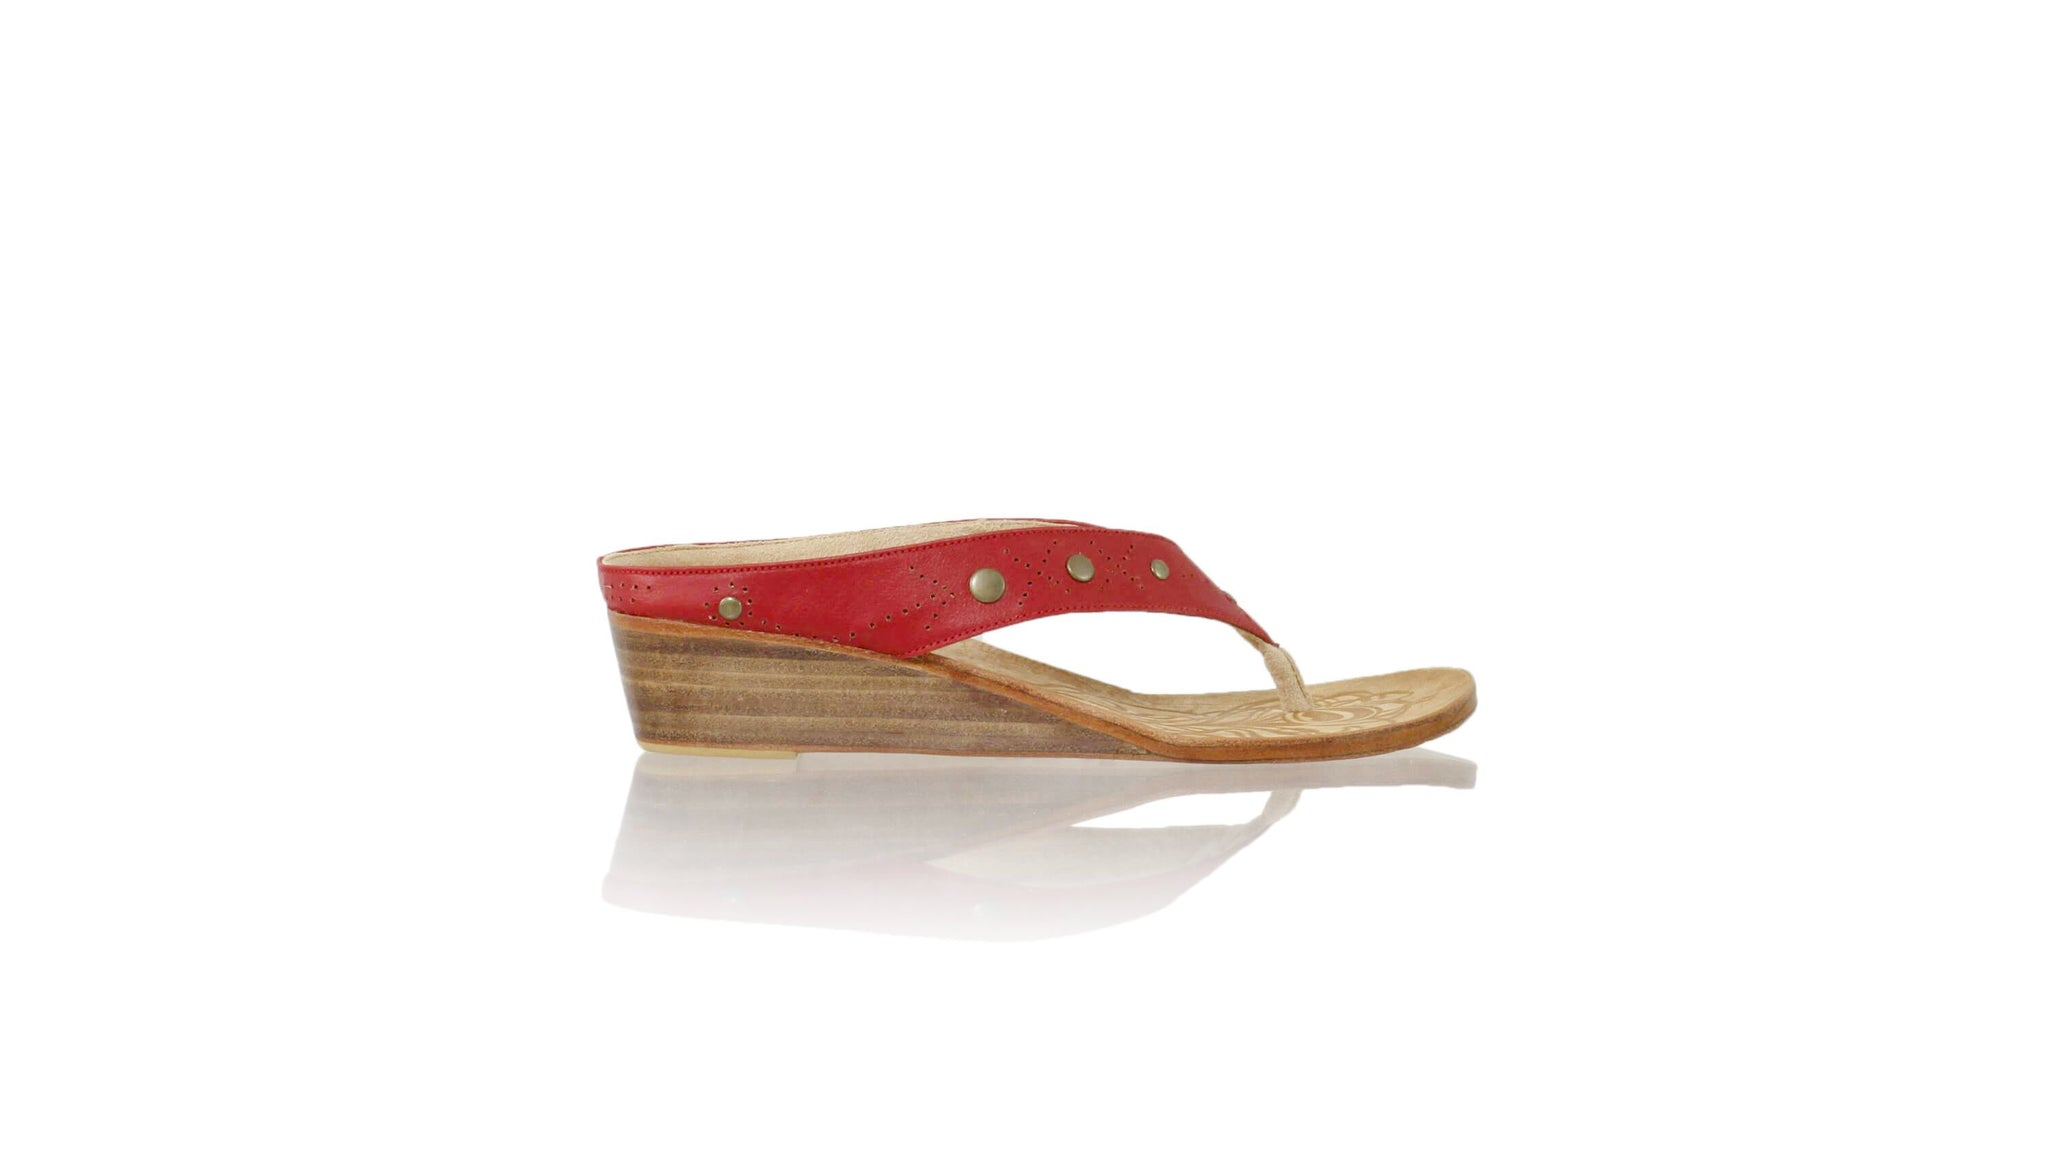 Leather-shoes-Asmiranda 35mm Wedge - Red-sandals wedges-NILUH DJELANTIK-NILUH DJELANTIK